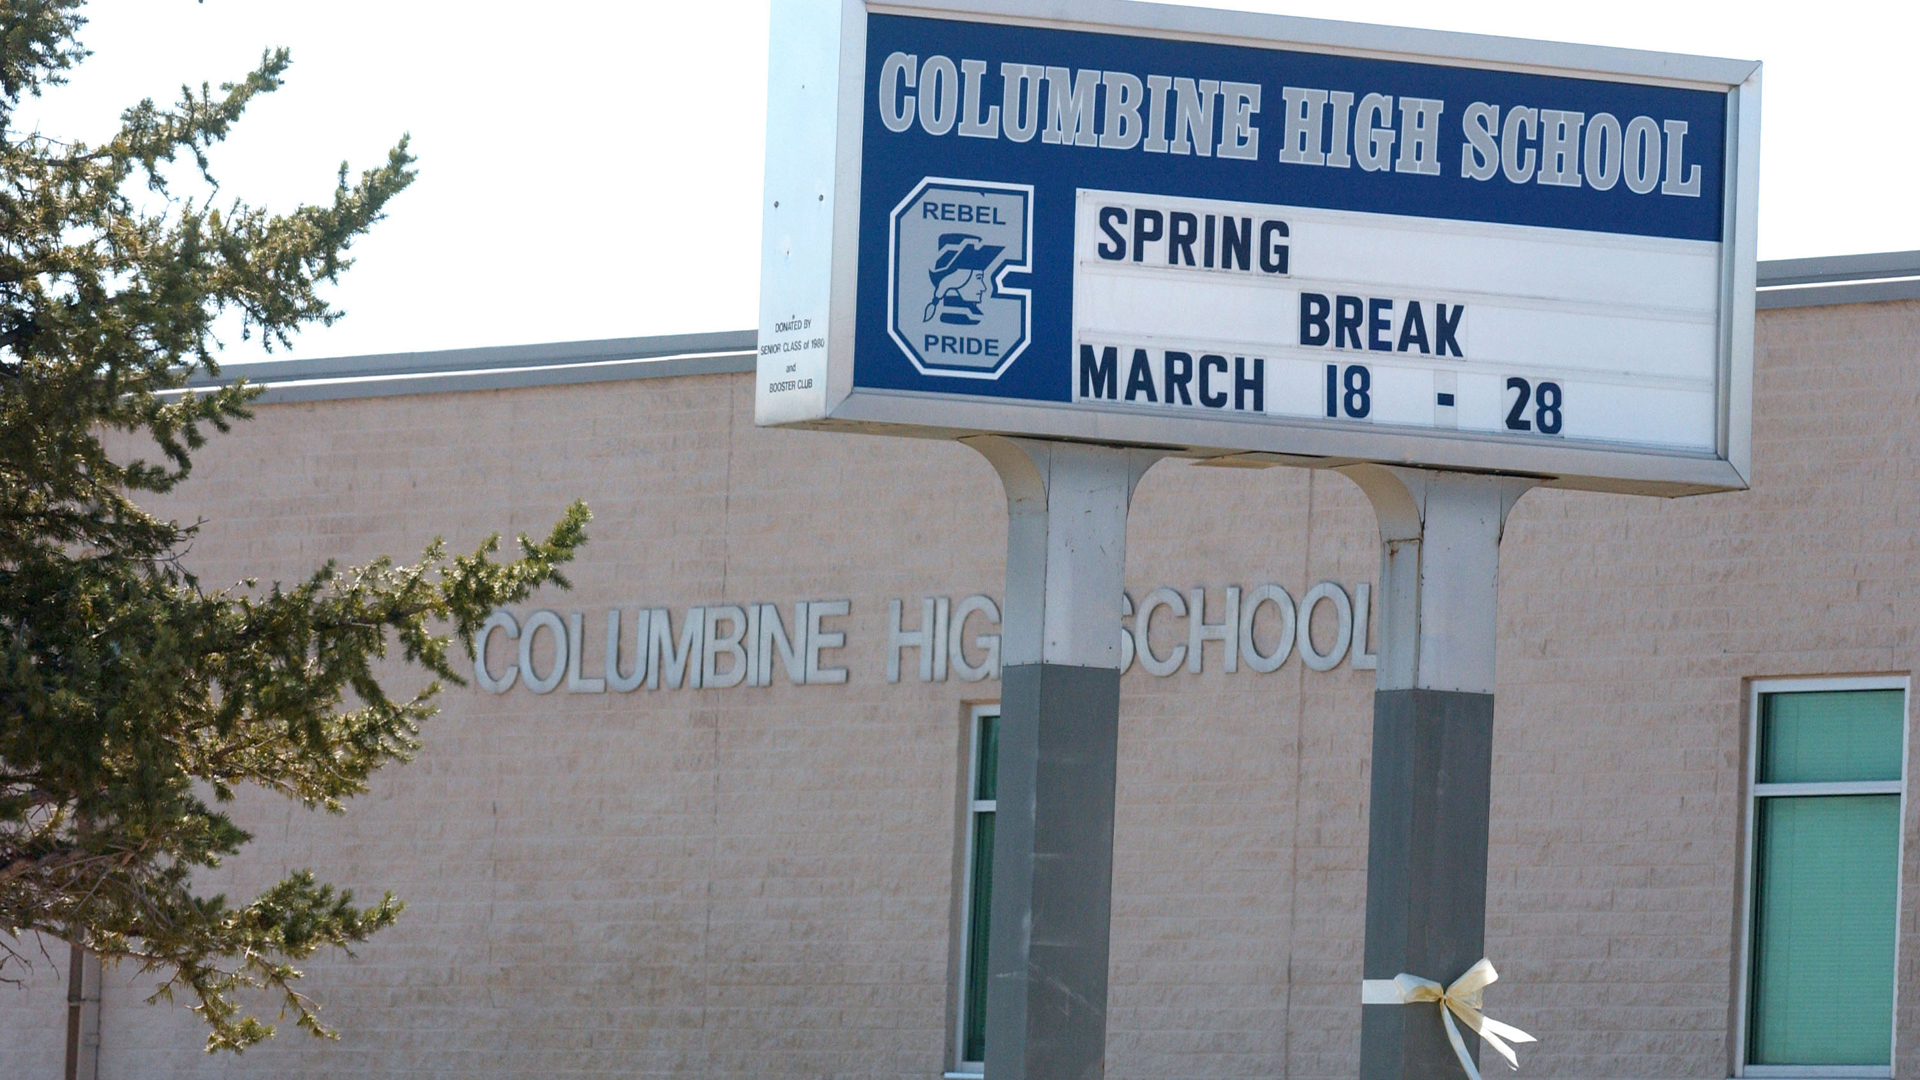 A sign announcing spring break week for Columbine High School students is shown March 22, 2005, in Littleton, Colorado. (Credit: Thomas Cooper/Getty Images)